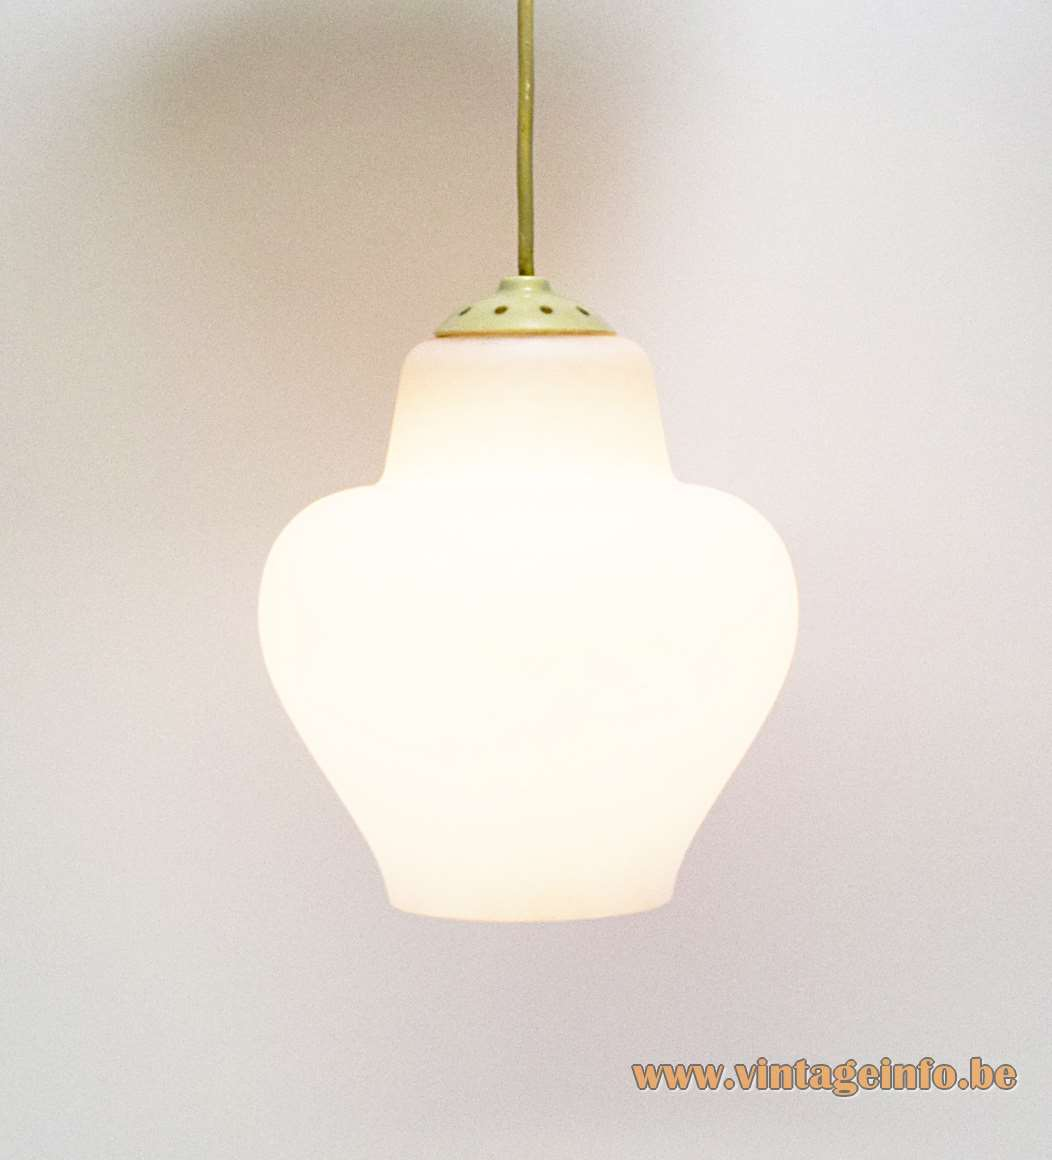 Philips Opal Glass Pendant Lamp 1950s 1960s white milky bell form metal parts MCM